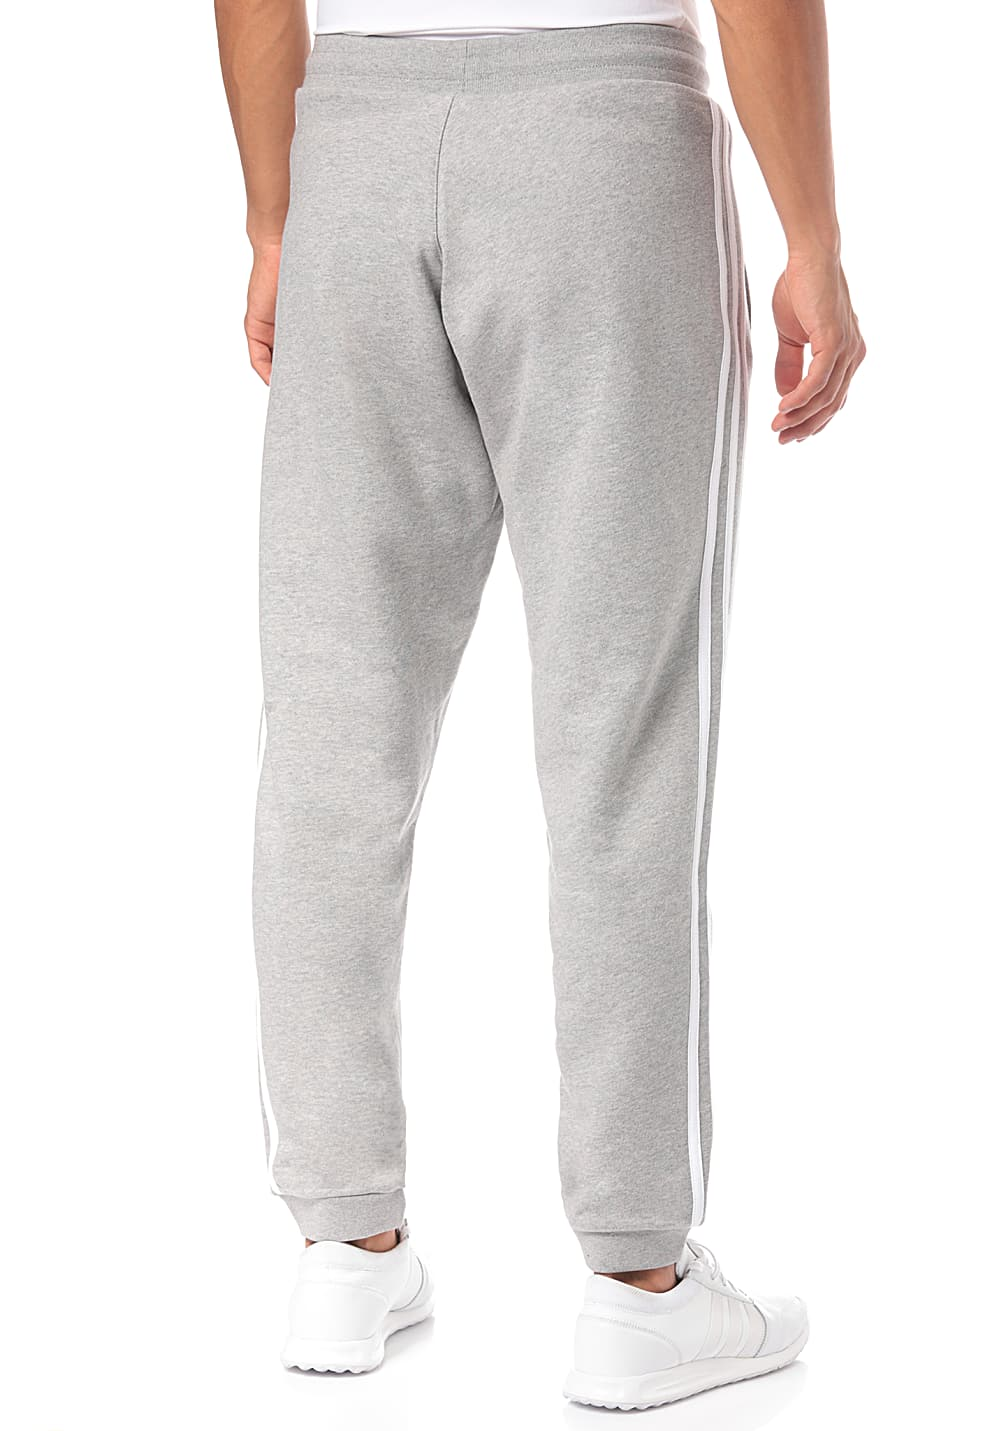 adidas Originals 3 Stripes Trainingshose für Herren Grau